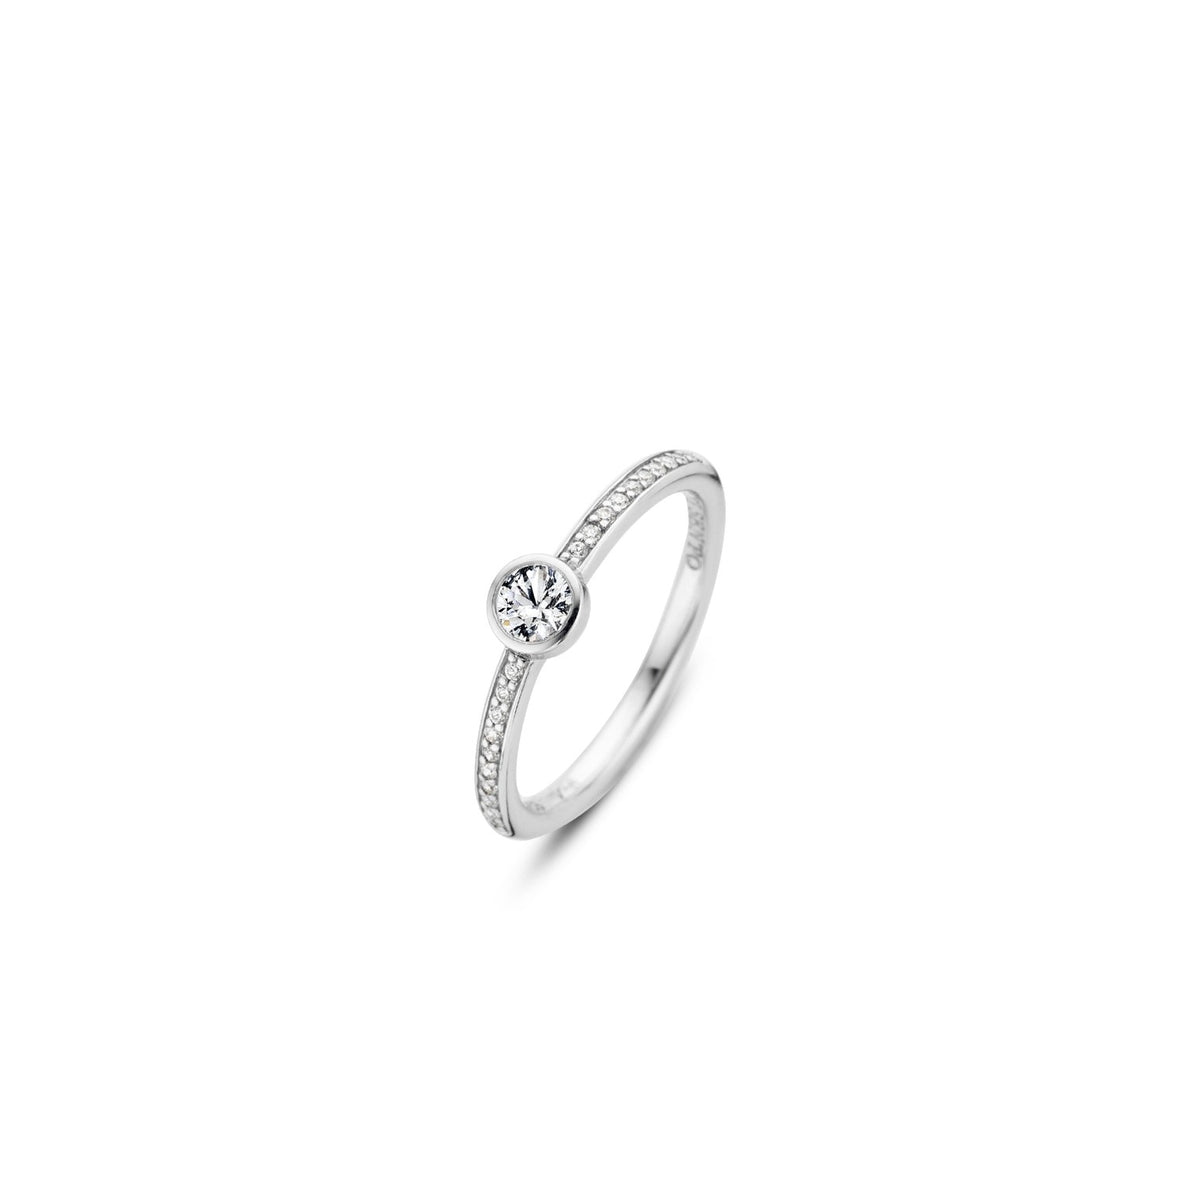 TI SENTO Sterling Silver Half Eternity Ring with Bezel Set Center Cubic Zirconia